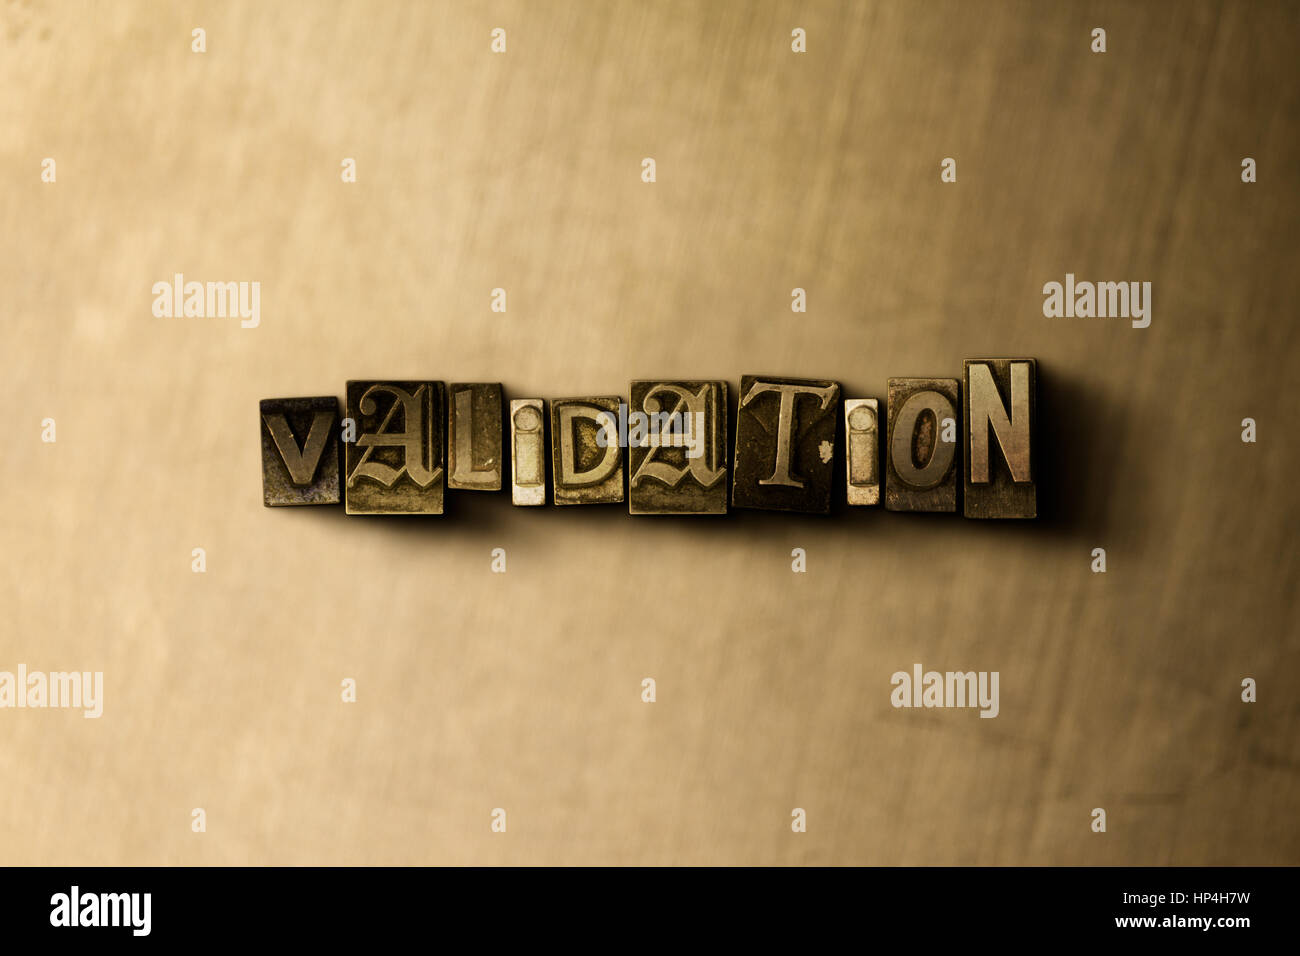 VALIDATION - close-up of grungy vintage typeset word on metal backdrop. Royalty free stock illustration.  Can be - Stock Image